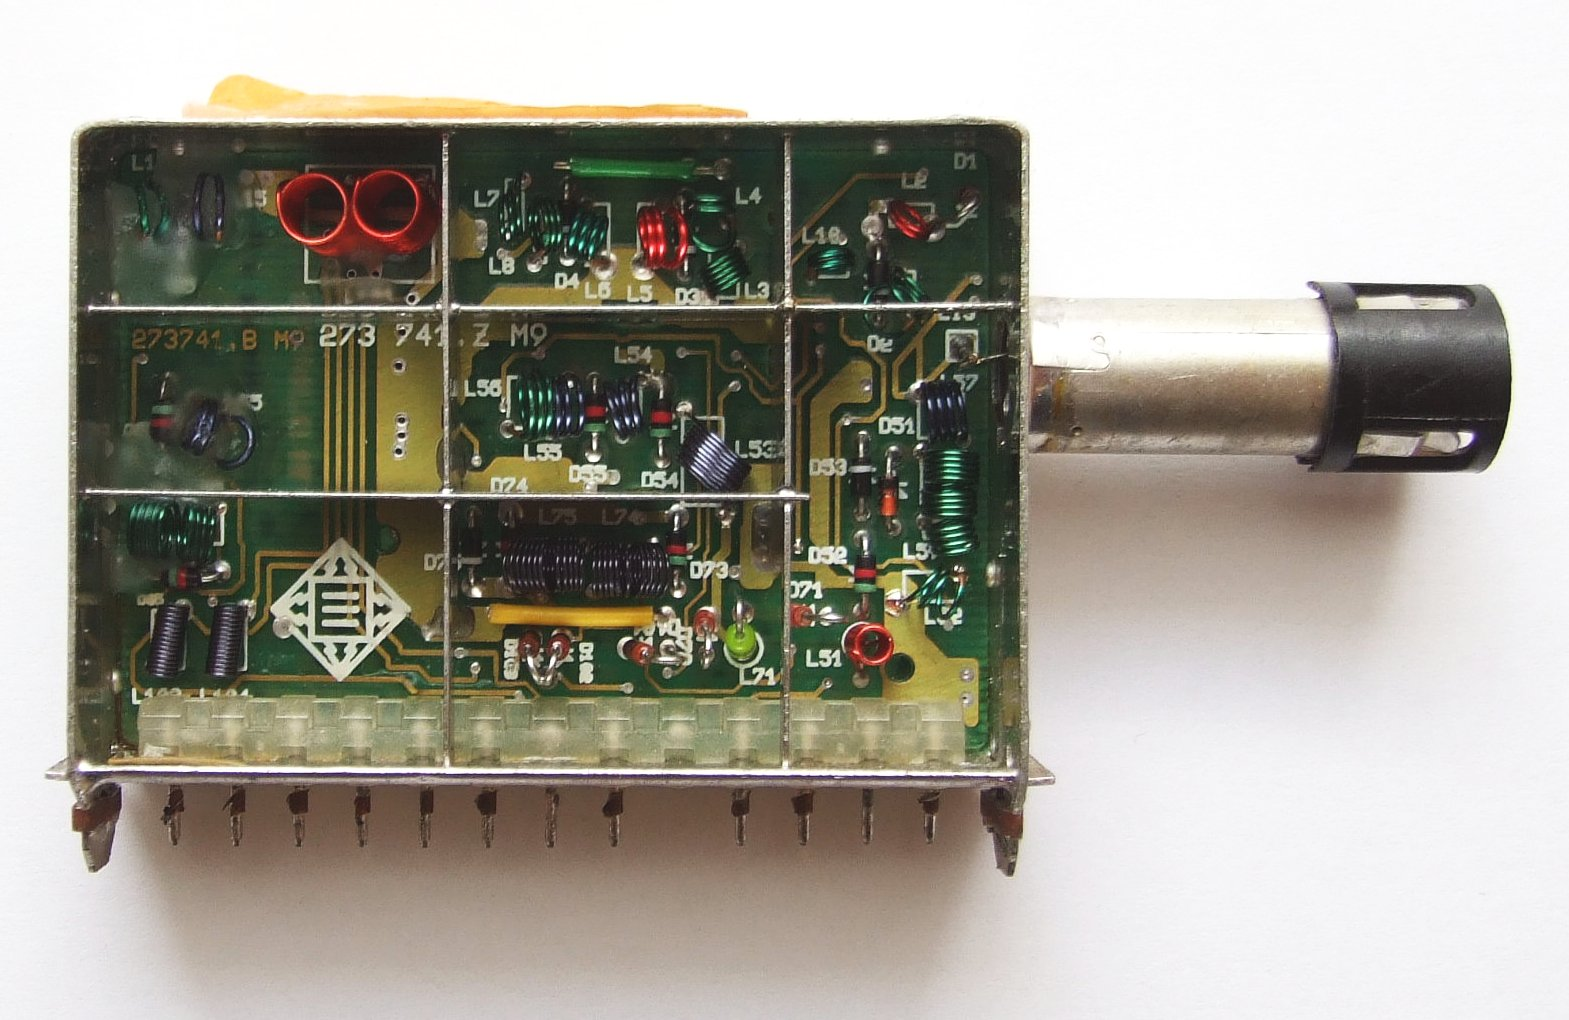 tuner (radio) wikipediaFm Radio May Be Used With Pc Circuit #3